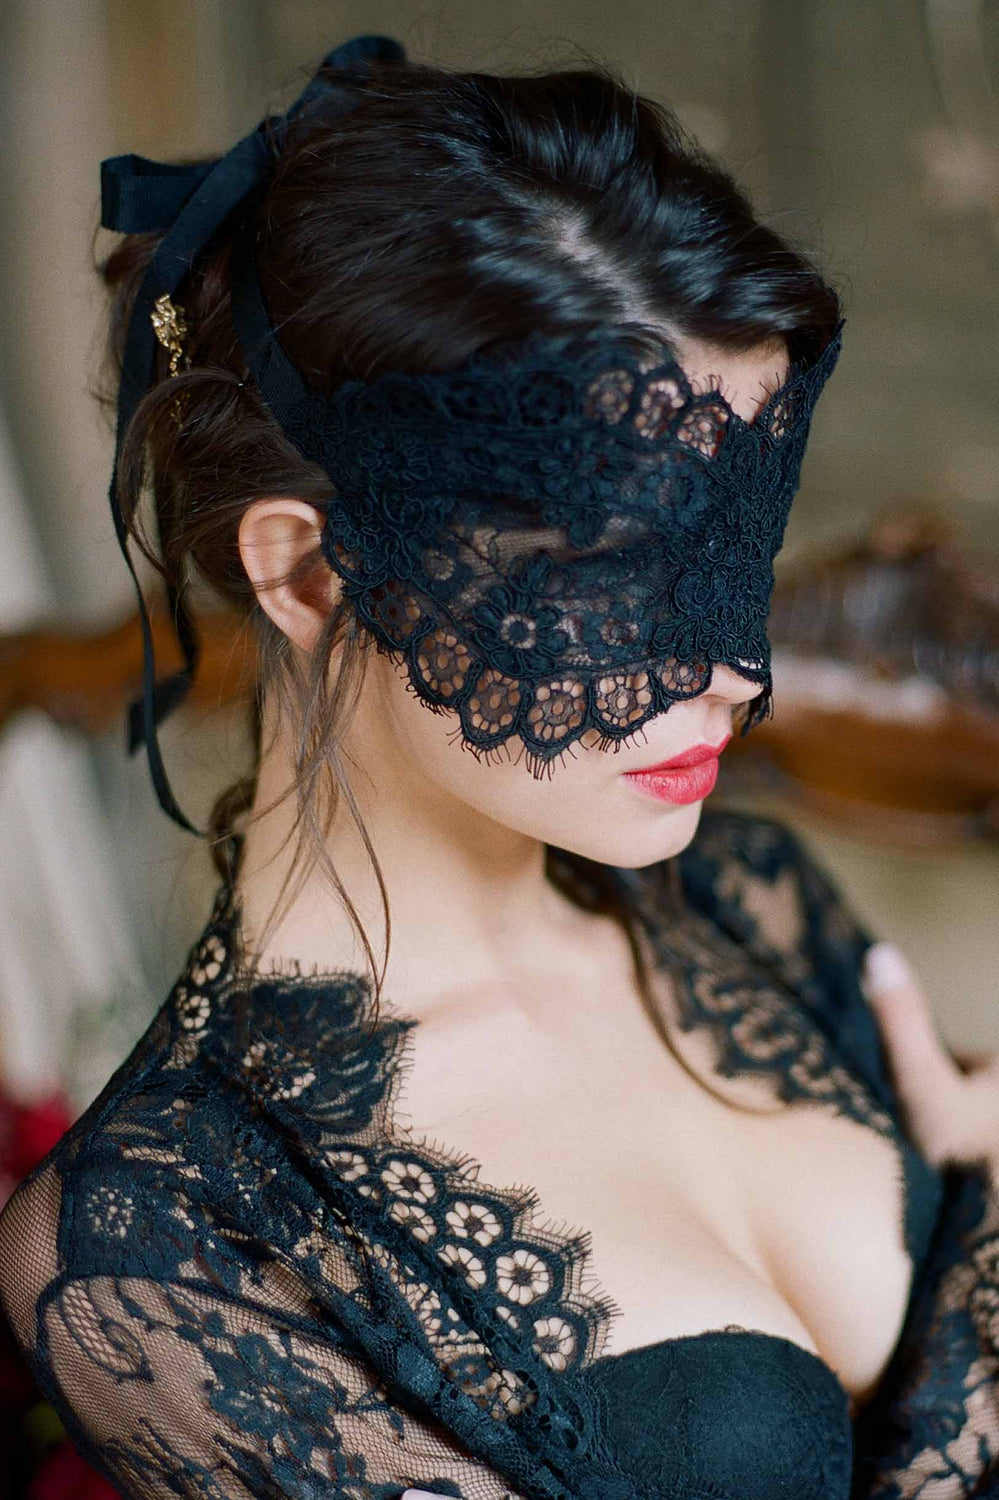 Rayna Alencon Lace Blindfold Venetian Boudoir Eye Mask in Ivory or Black